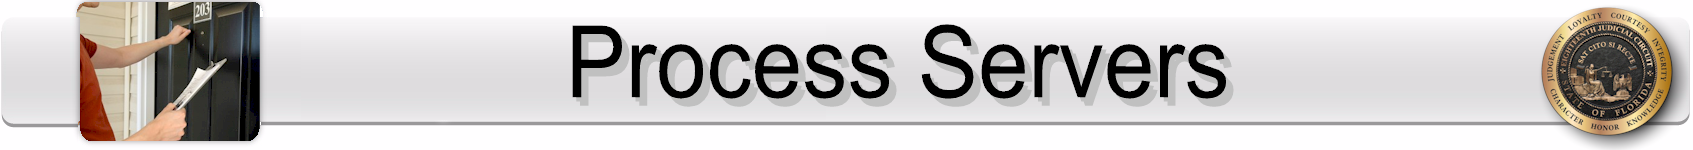 Process Servers Page Banner